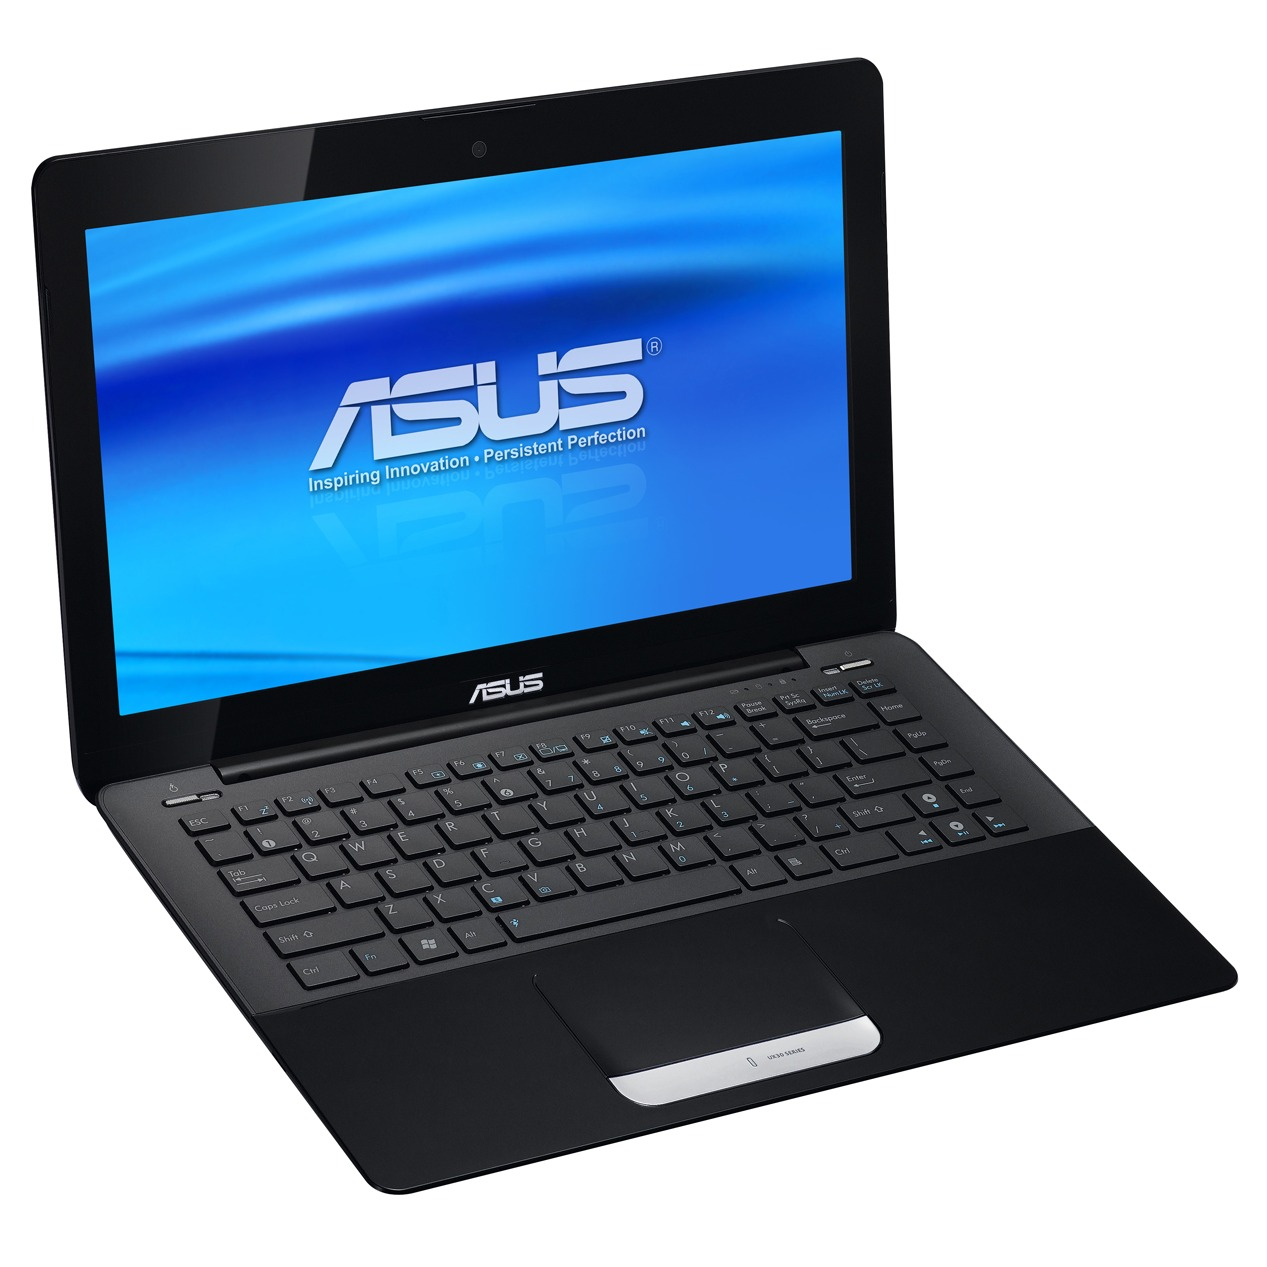 "PC portable ASUS UX30-QX078X ASUS UX30-QX078X - Intel Core 2 Duo SU7300 4 Go 500 Go 13.3"" LCD Wi-Fi N/Bluetooth Webcam Windows 7 Professionnel (garantie constructeur 2 ans)"